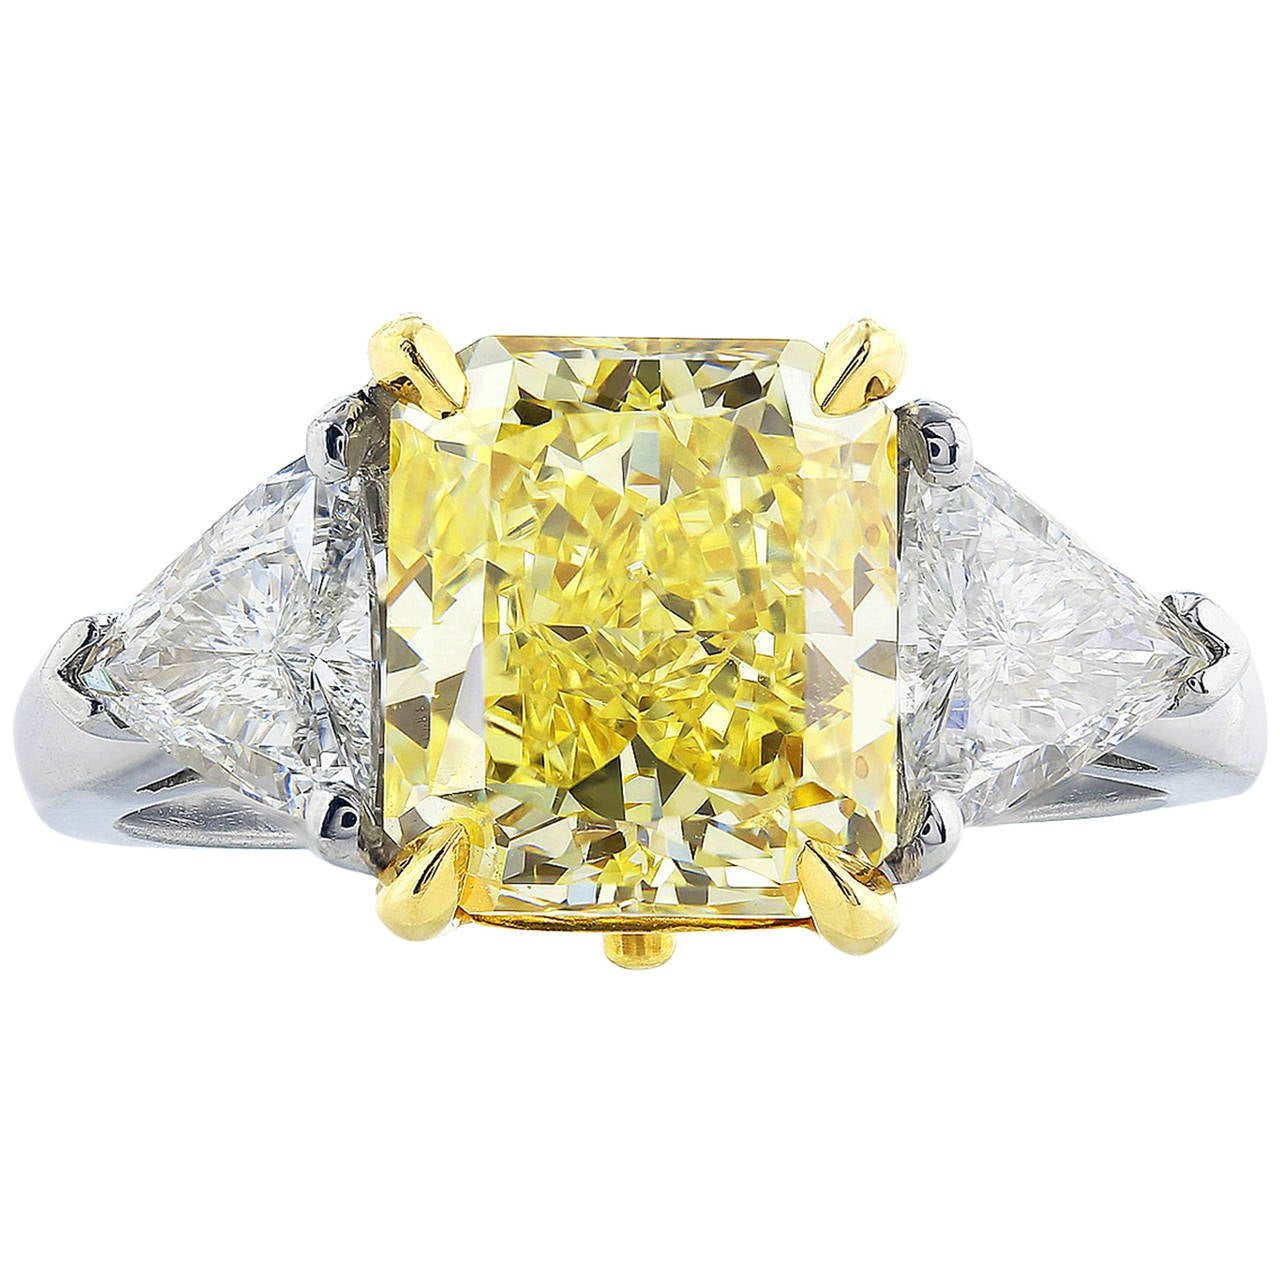 3.01 Carat Radiant Fancy Yellow Diamond Ring